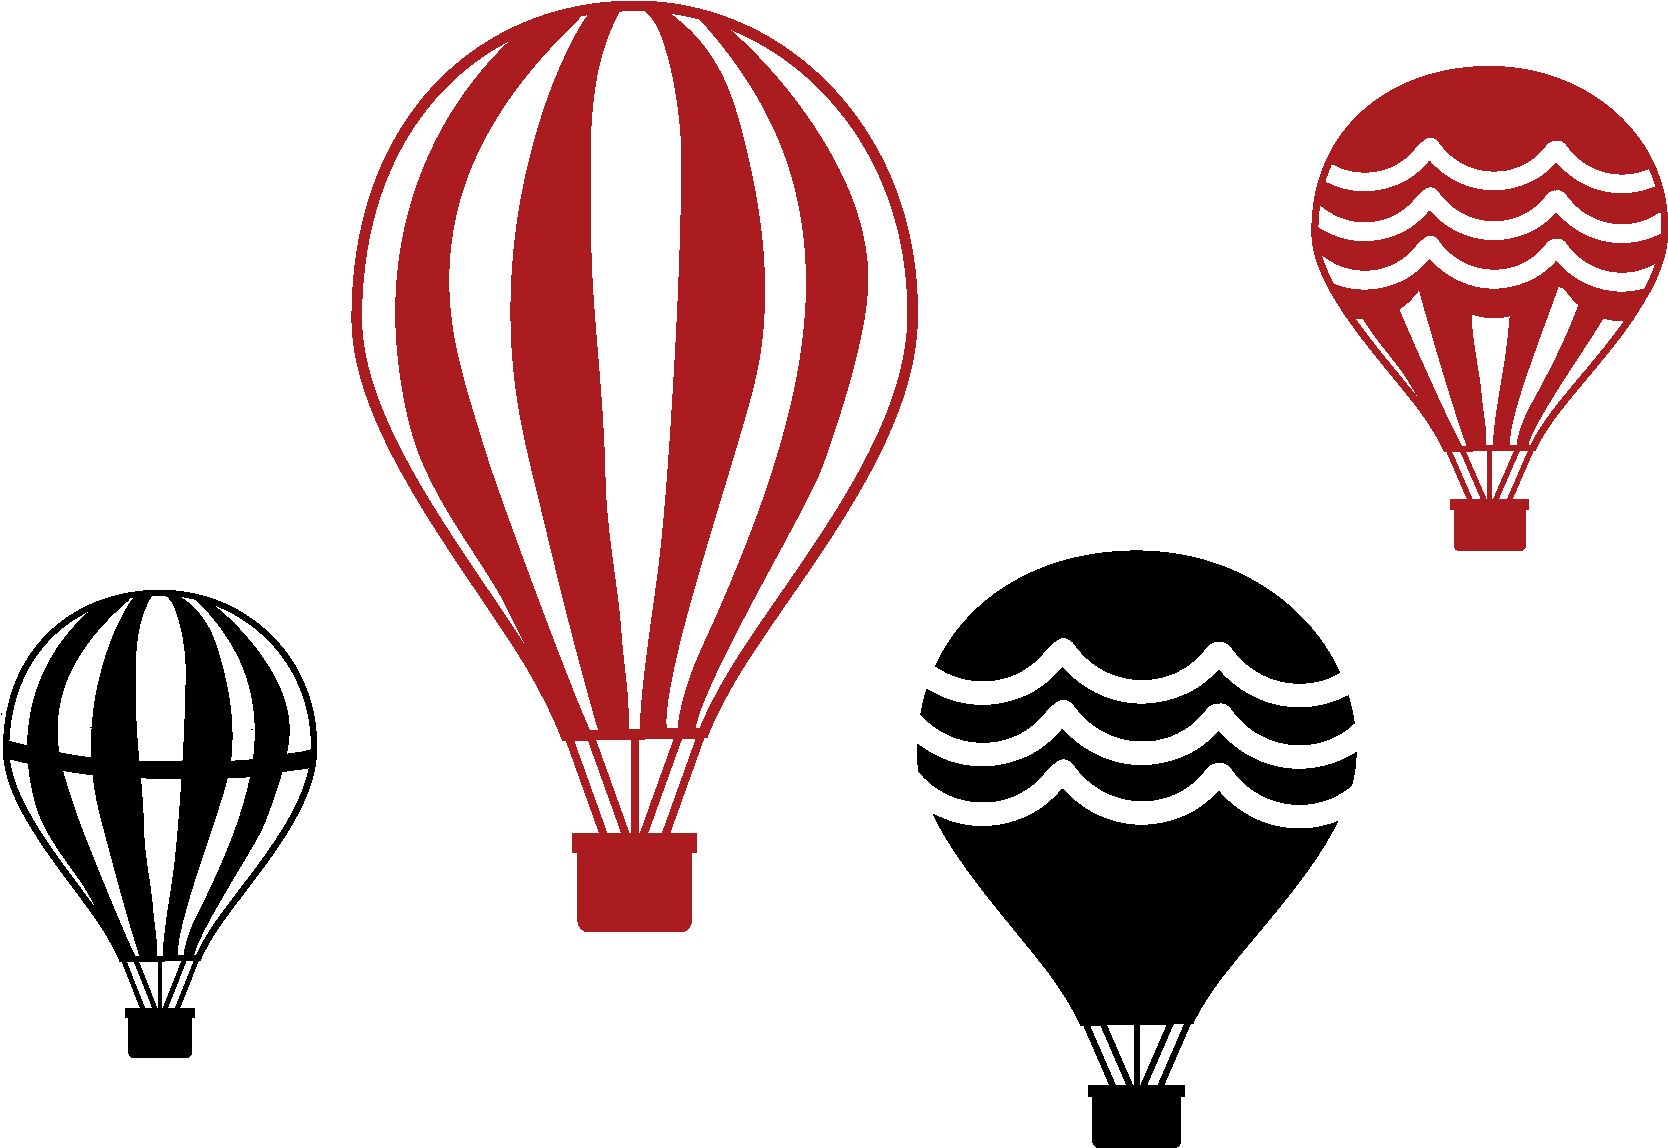 Vintage hot air balloon png. Download set of four